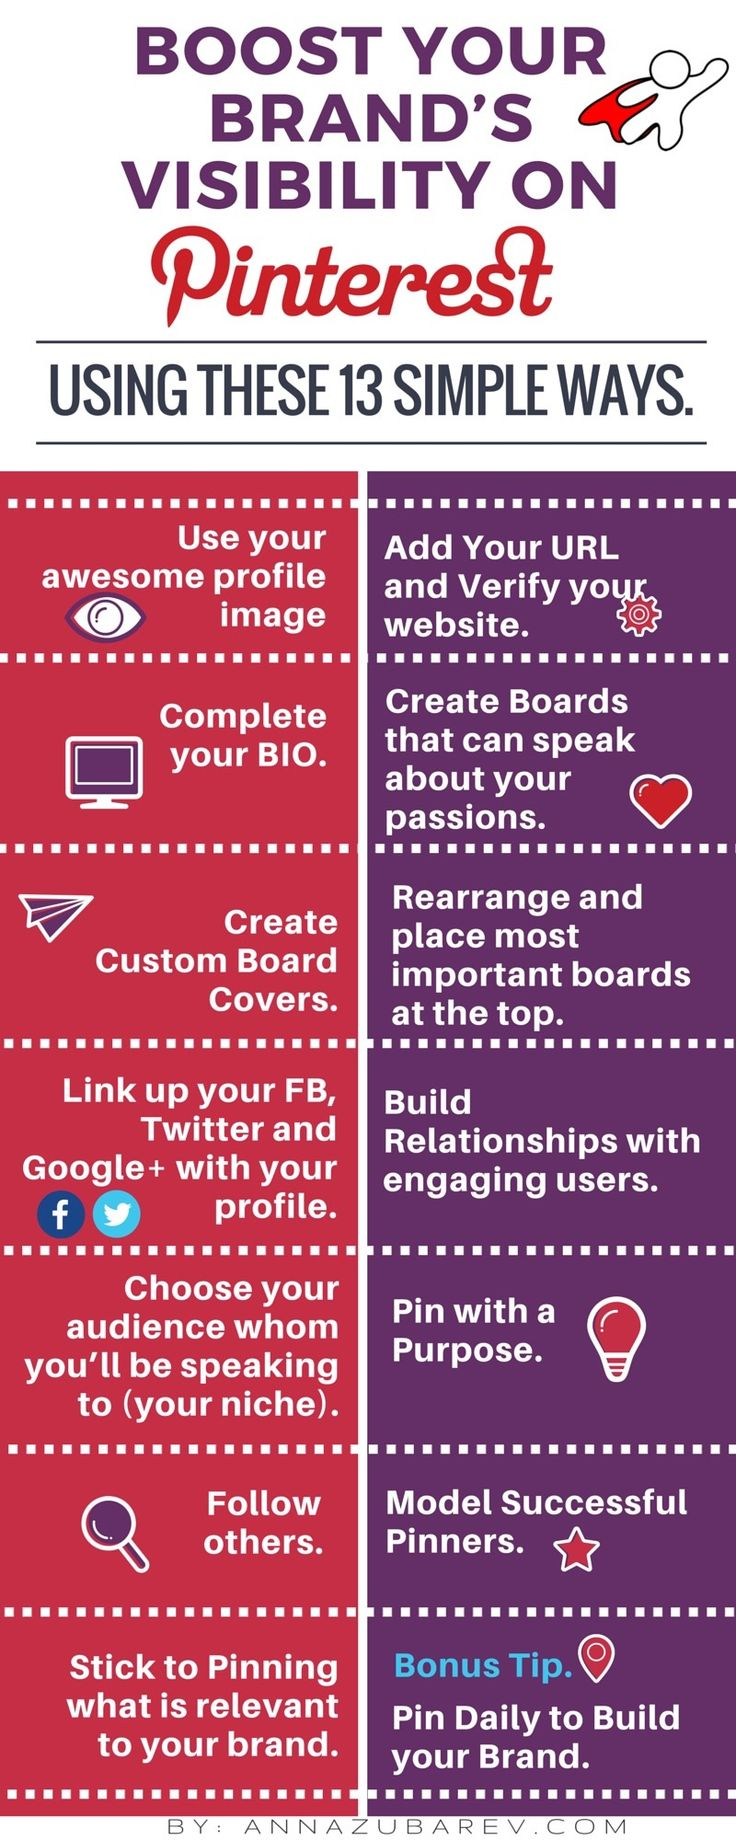 17 best images about your own brand personal boost your brand s visibility using these 13 simple ways